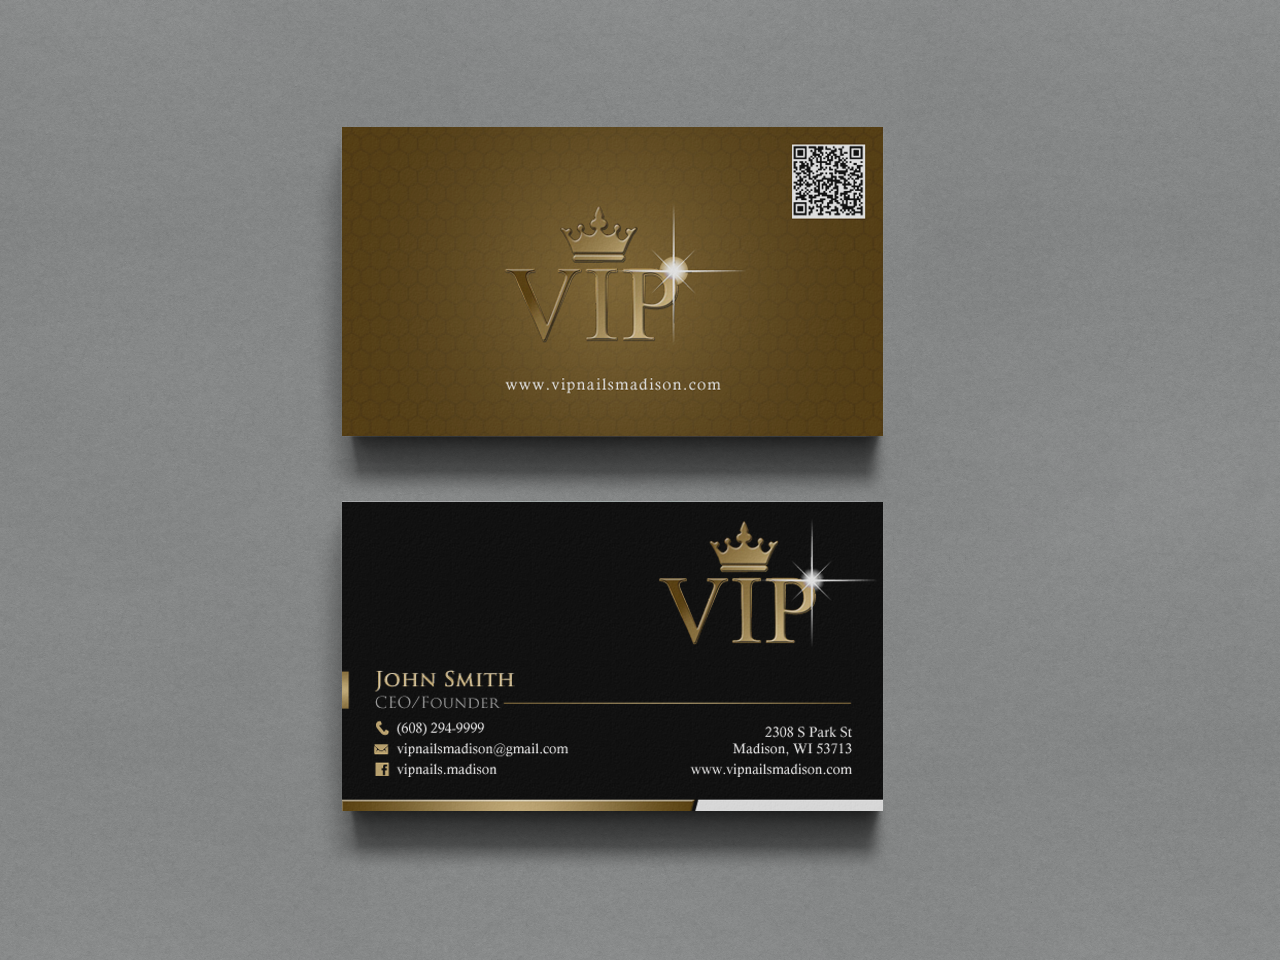 Elegant playful business business card design for vip nails spa business card design by chandrayaaneative for vip nails spa design 8506206 reheart Choice Image